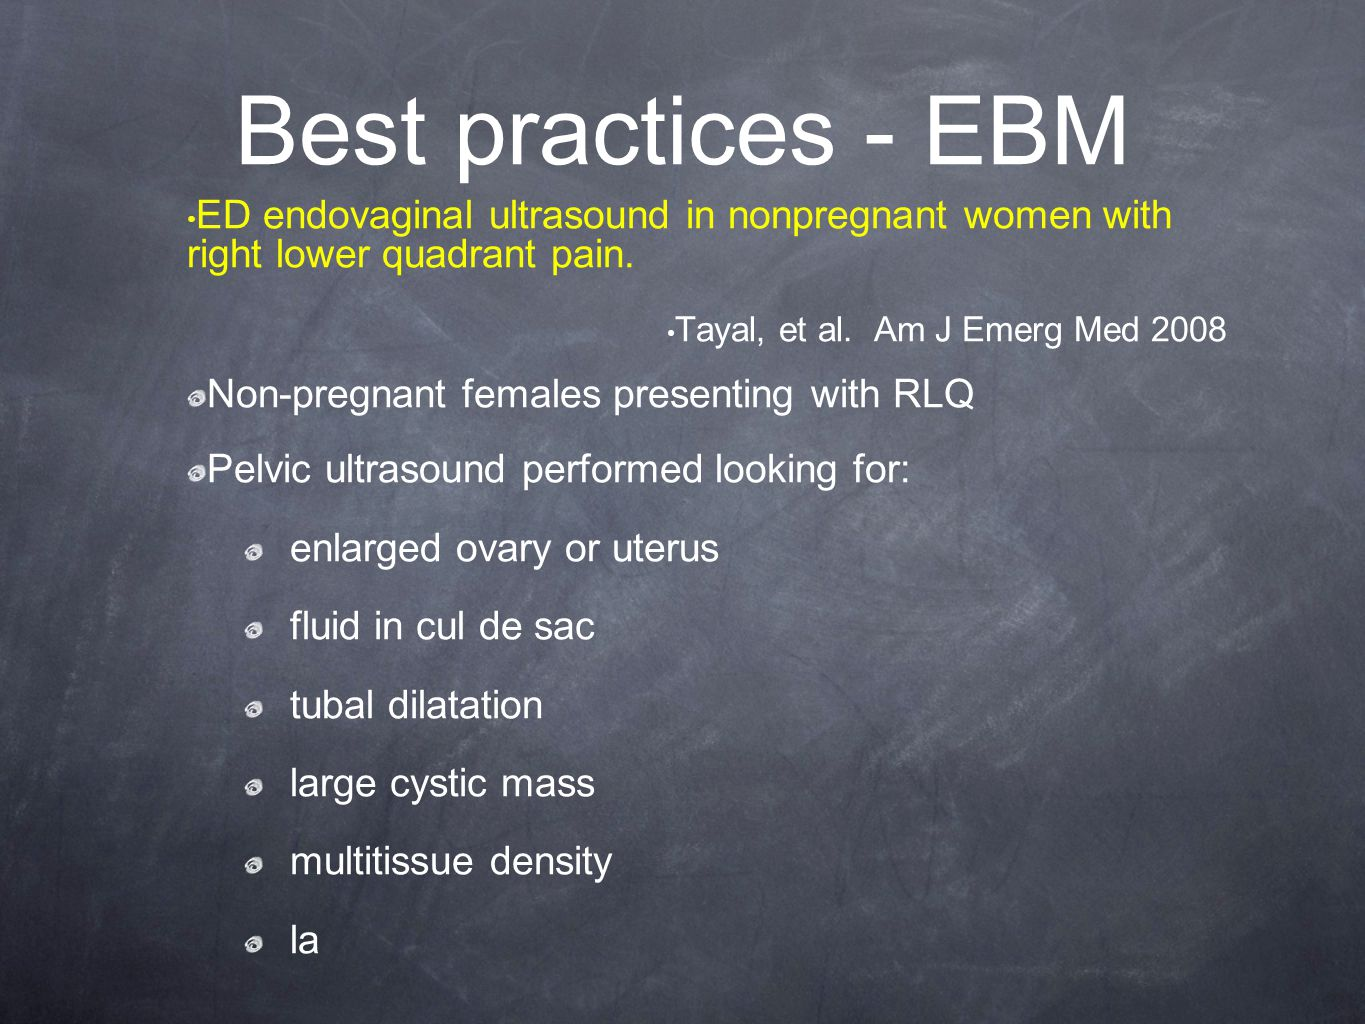 Best practices - EBM ED endovaginal ultrasound in nonpregnant women with right lower quadrant pain.